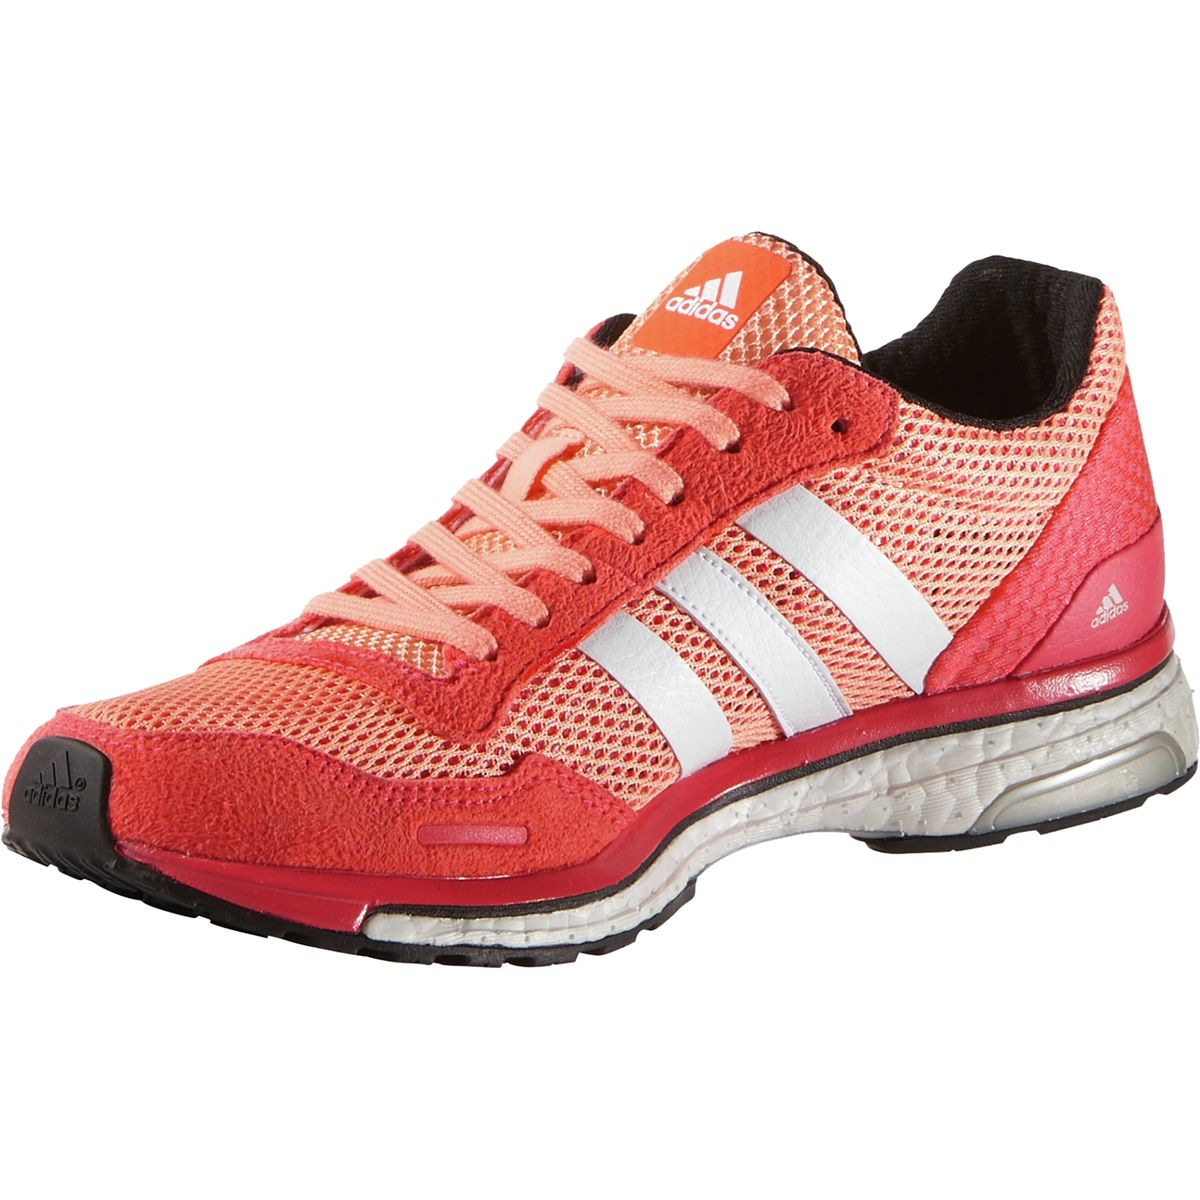 adidas adizero adios boost 3 running shoe women 39 s competitive cyclist. Black Bedroom Furniture Sets. Home Design Ideas